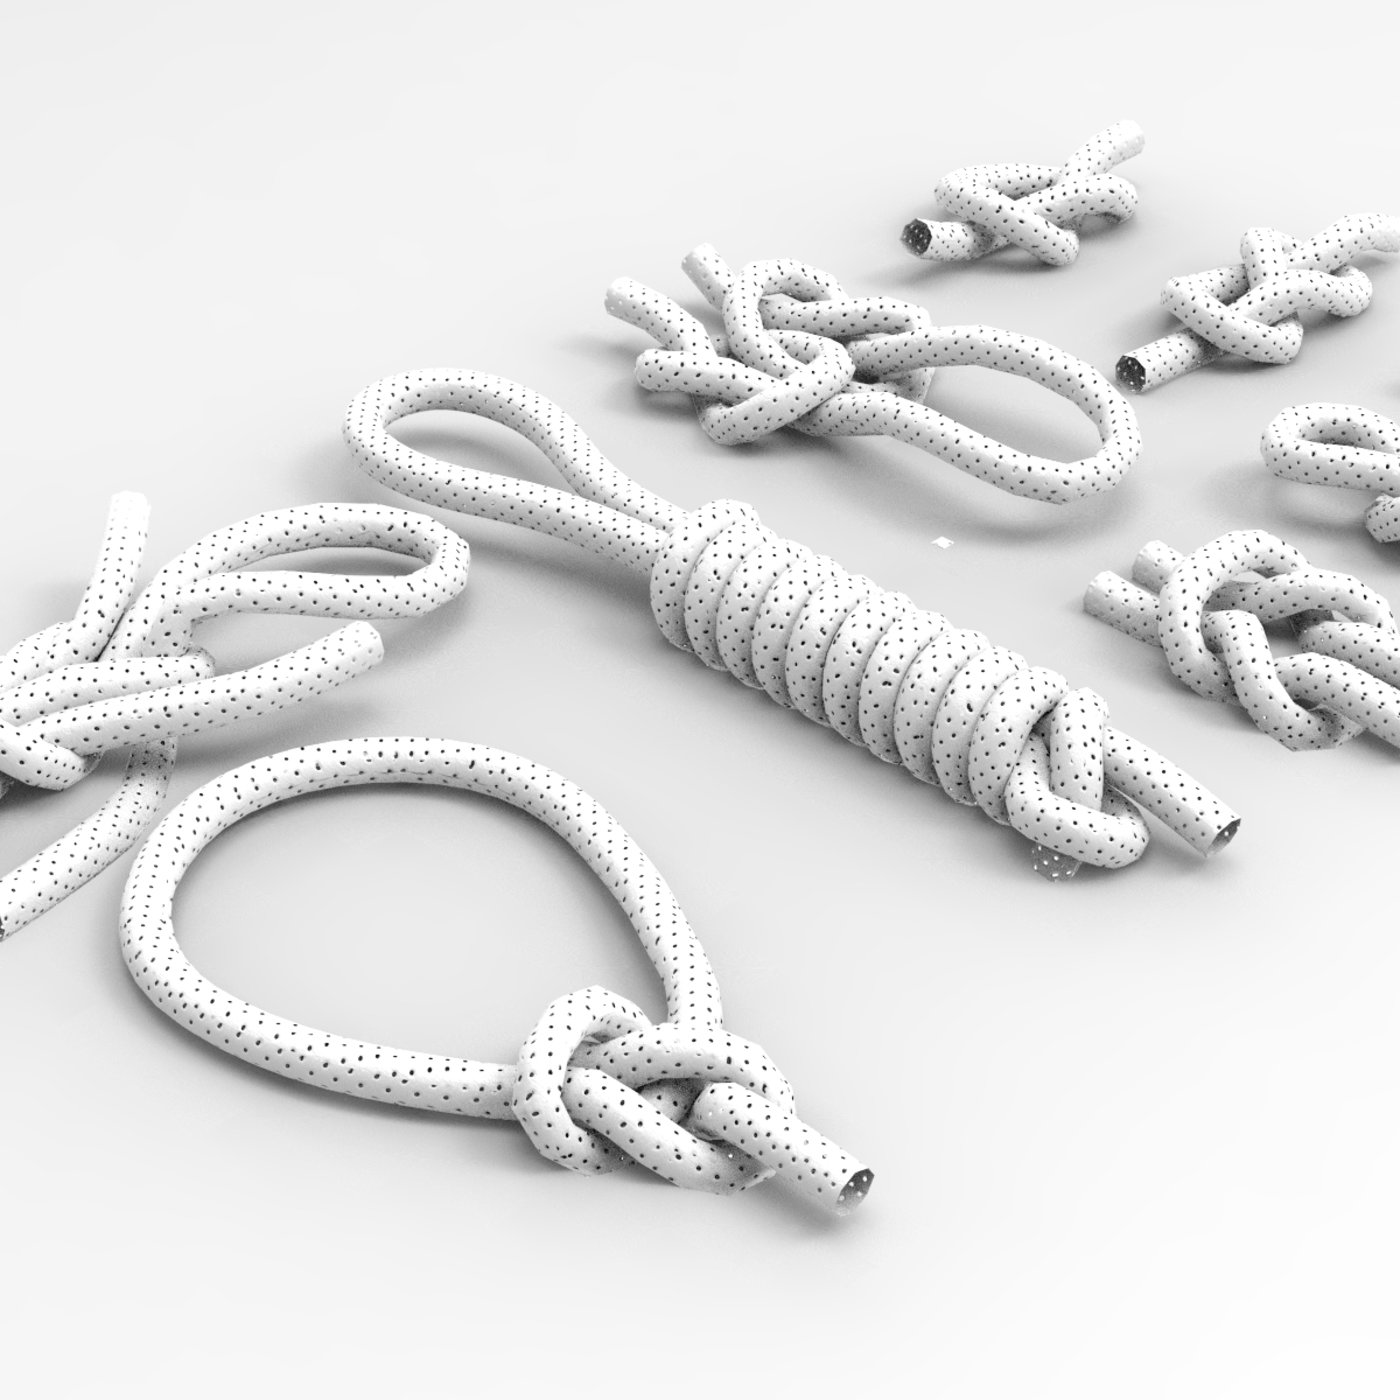 Rope Knot Types